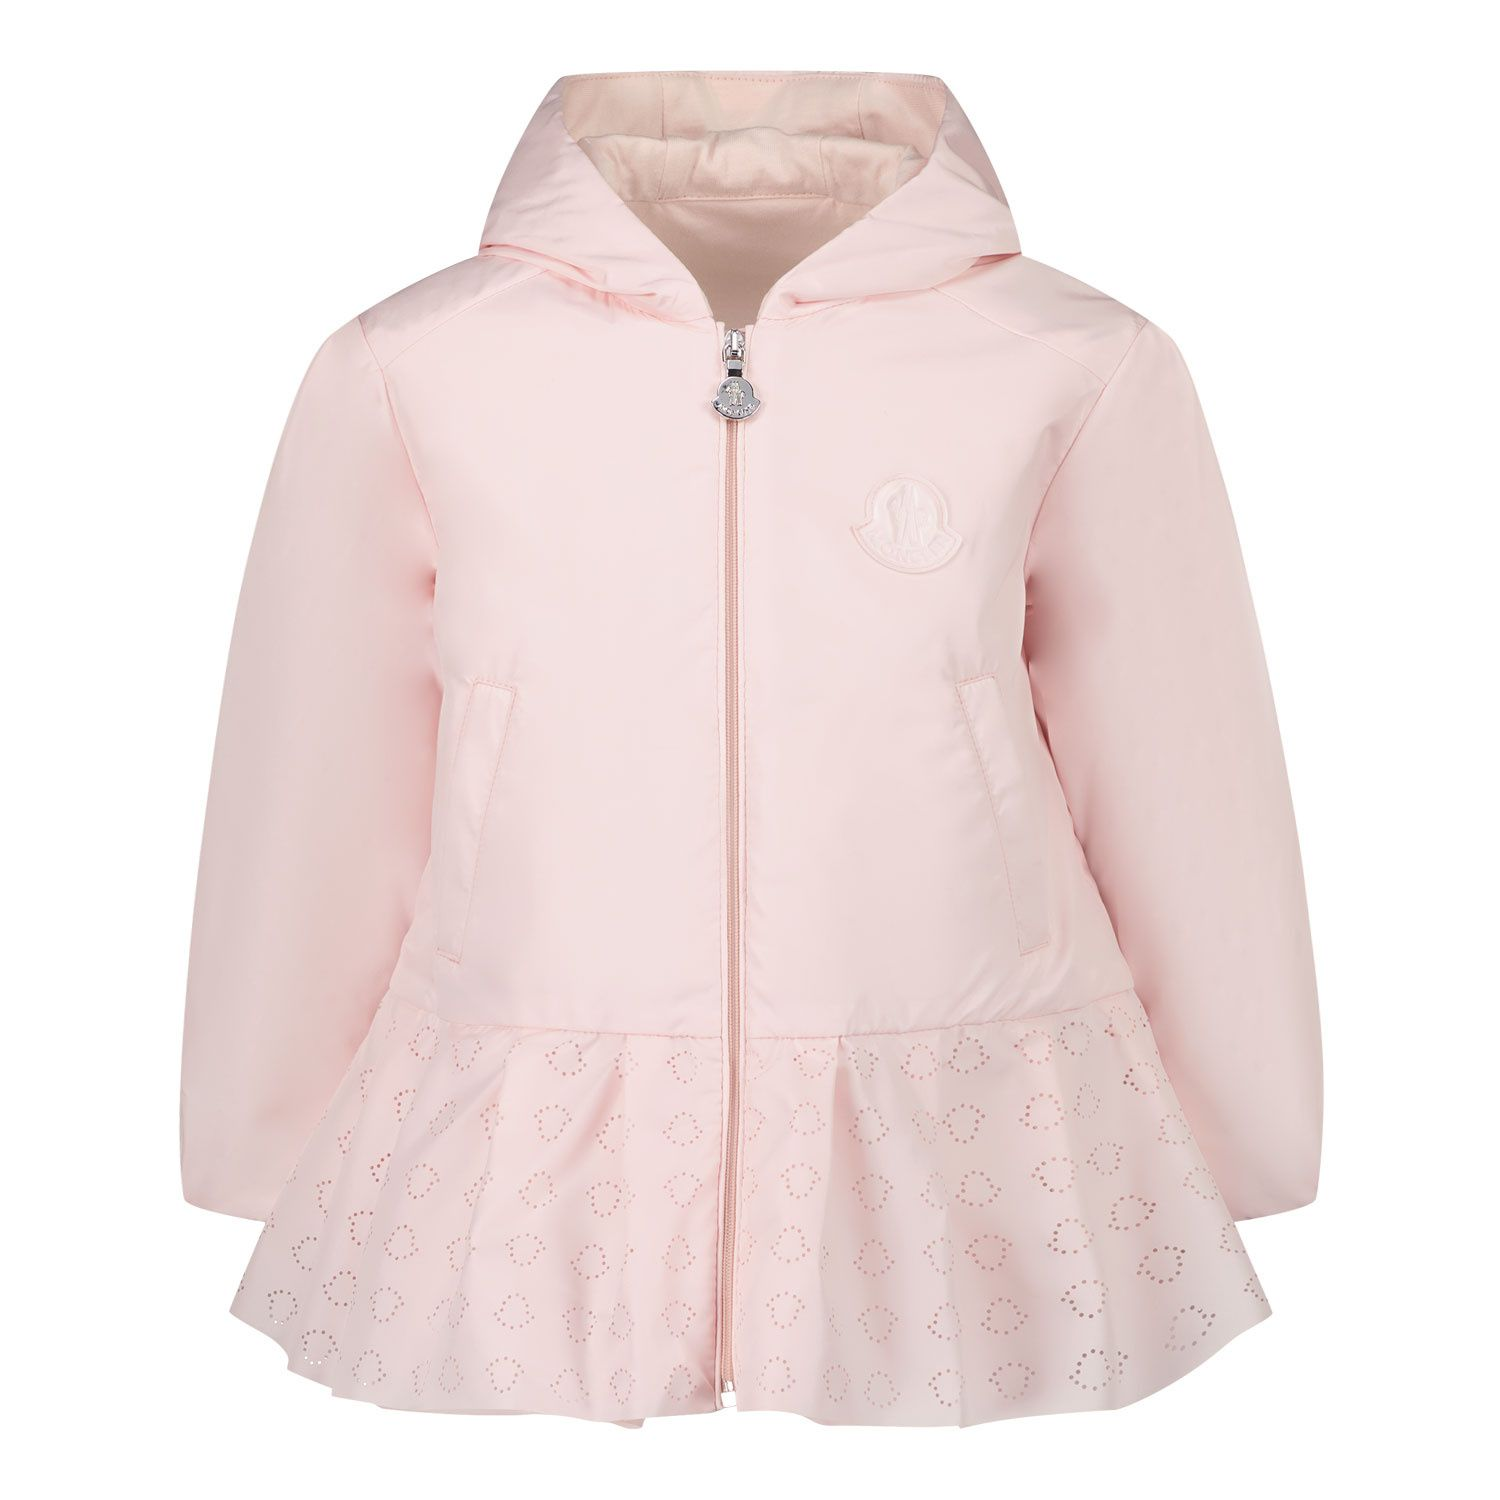 Picture of Moncler 1B70110 baby coat light pink